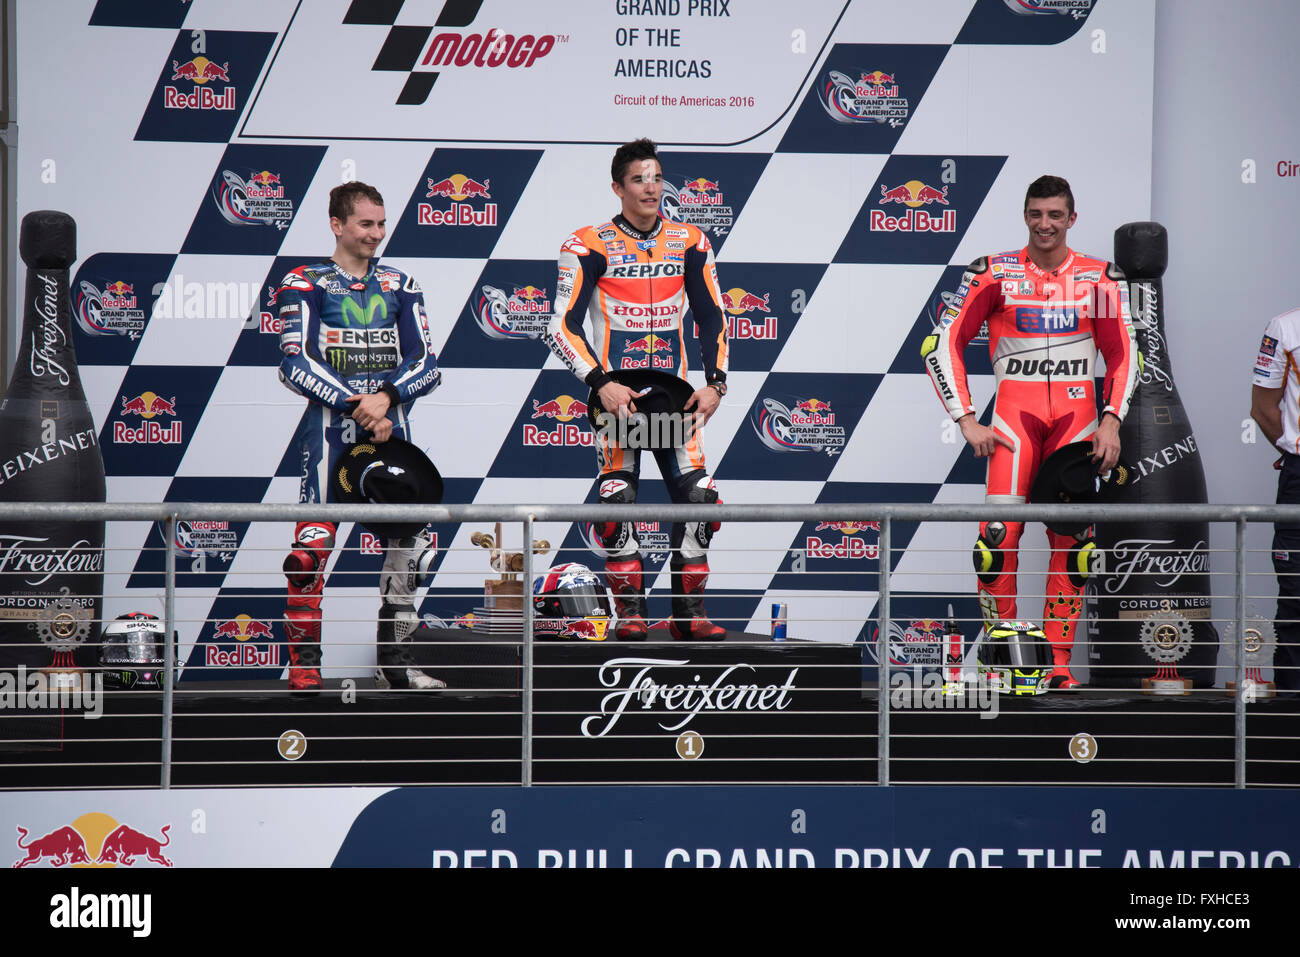 Marc Marquez , Jorge Lorenzo and Andrea Iannone on the podium after the 2016 MotoGP Red Bull Grand Prix of the Americas Stock Photo